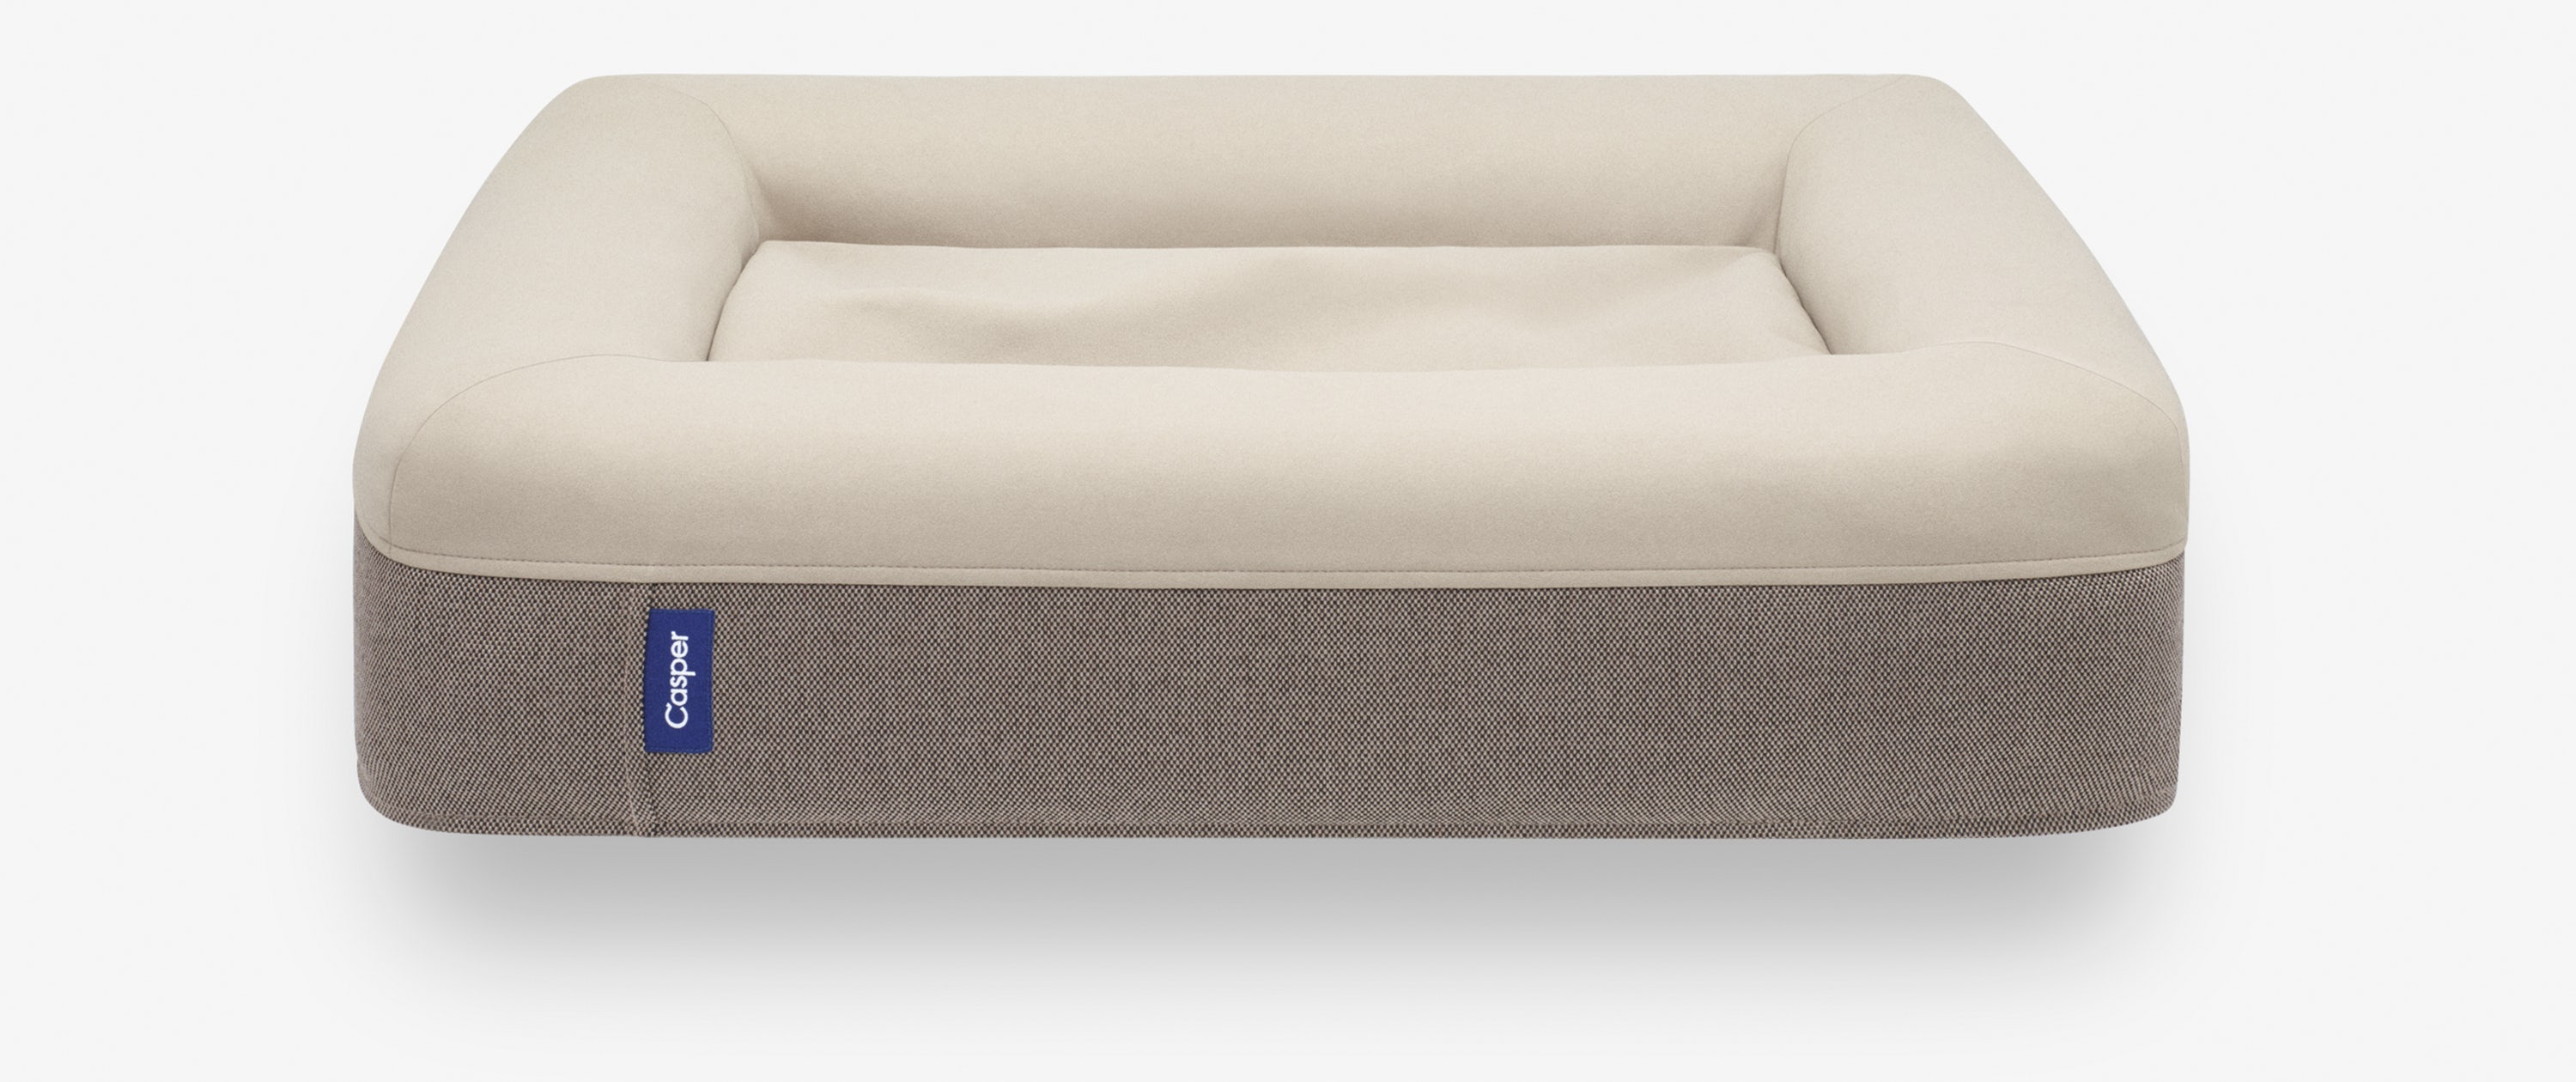 Dog beds that look like couches - Dog Beds That Look Like Couches 38